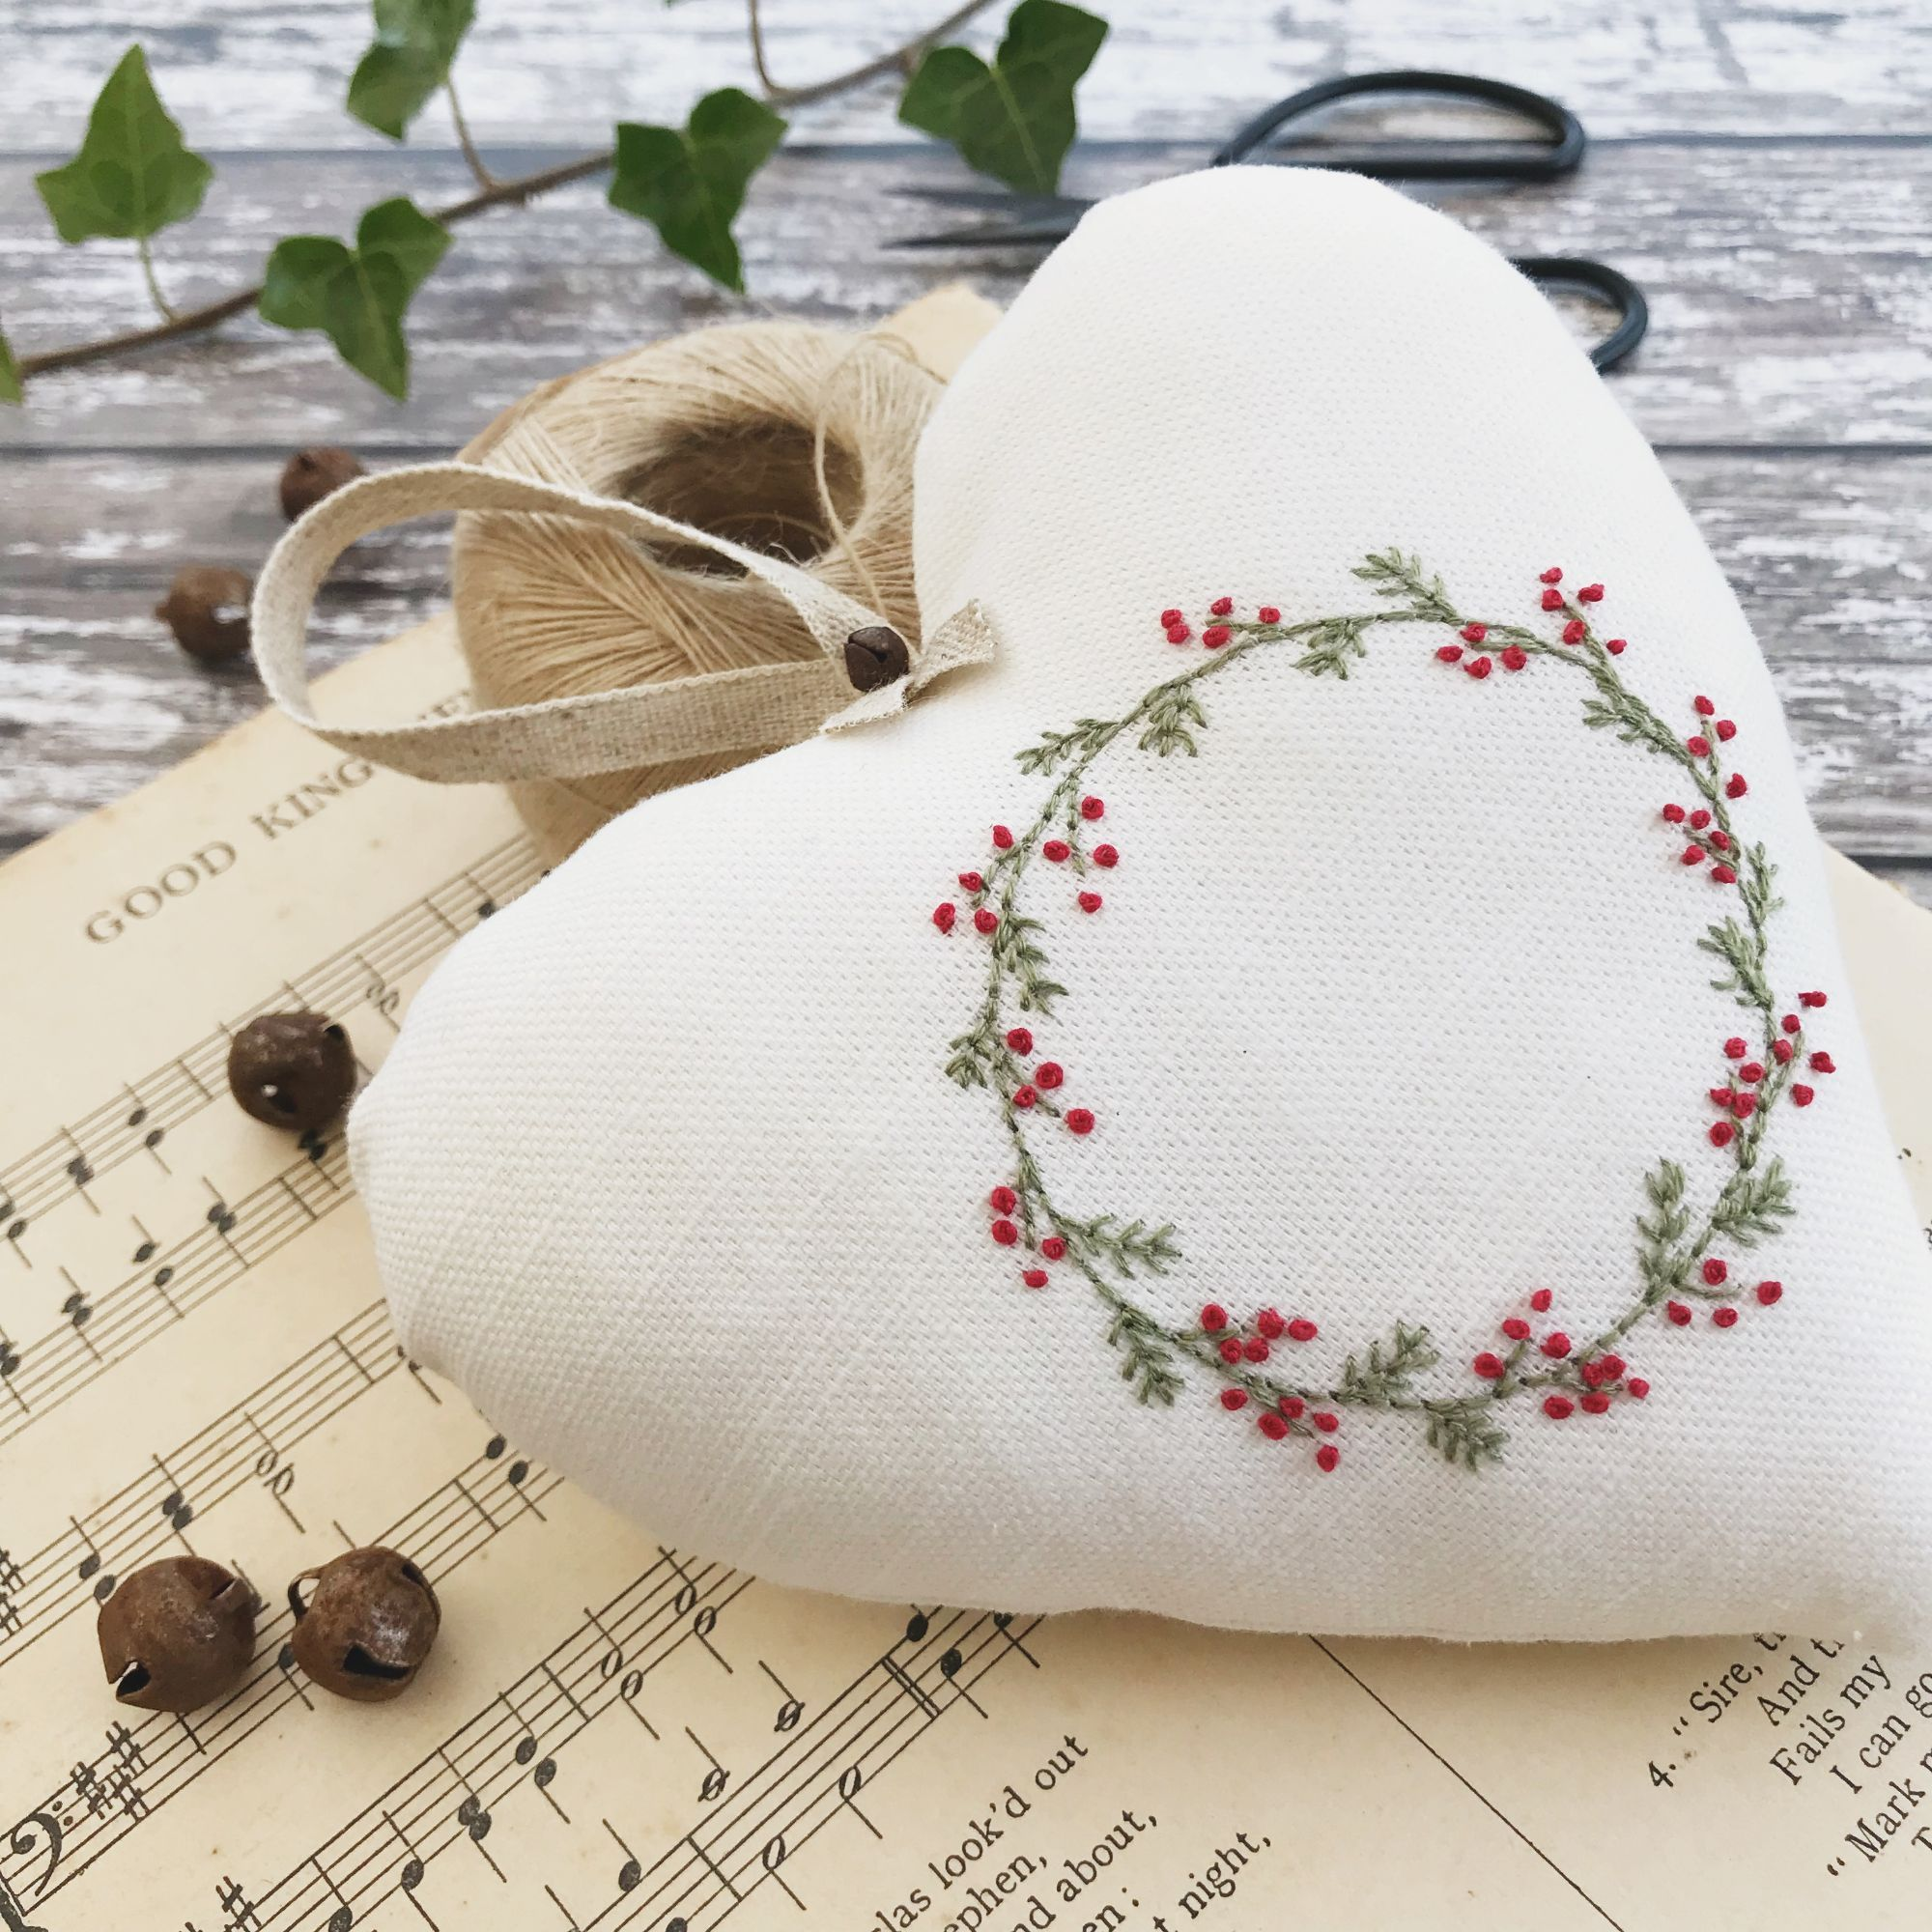 Hand Sewing Project Christmas Garland Hoop Art Kit English Paper-Piecing